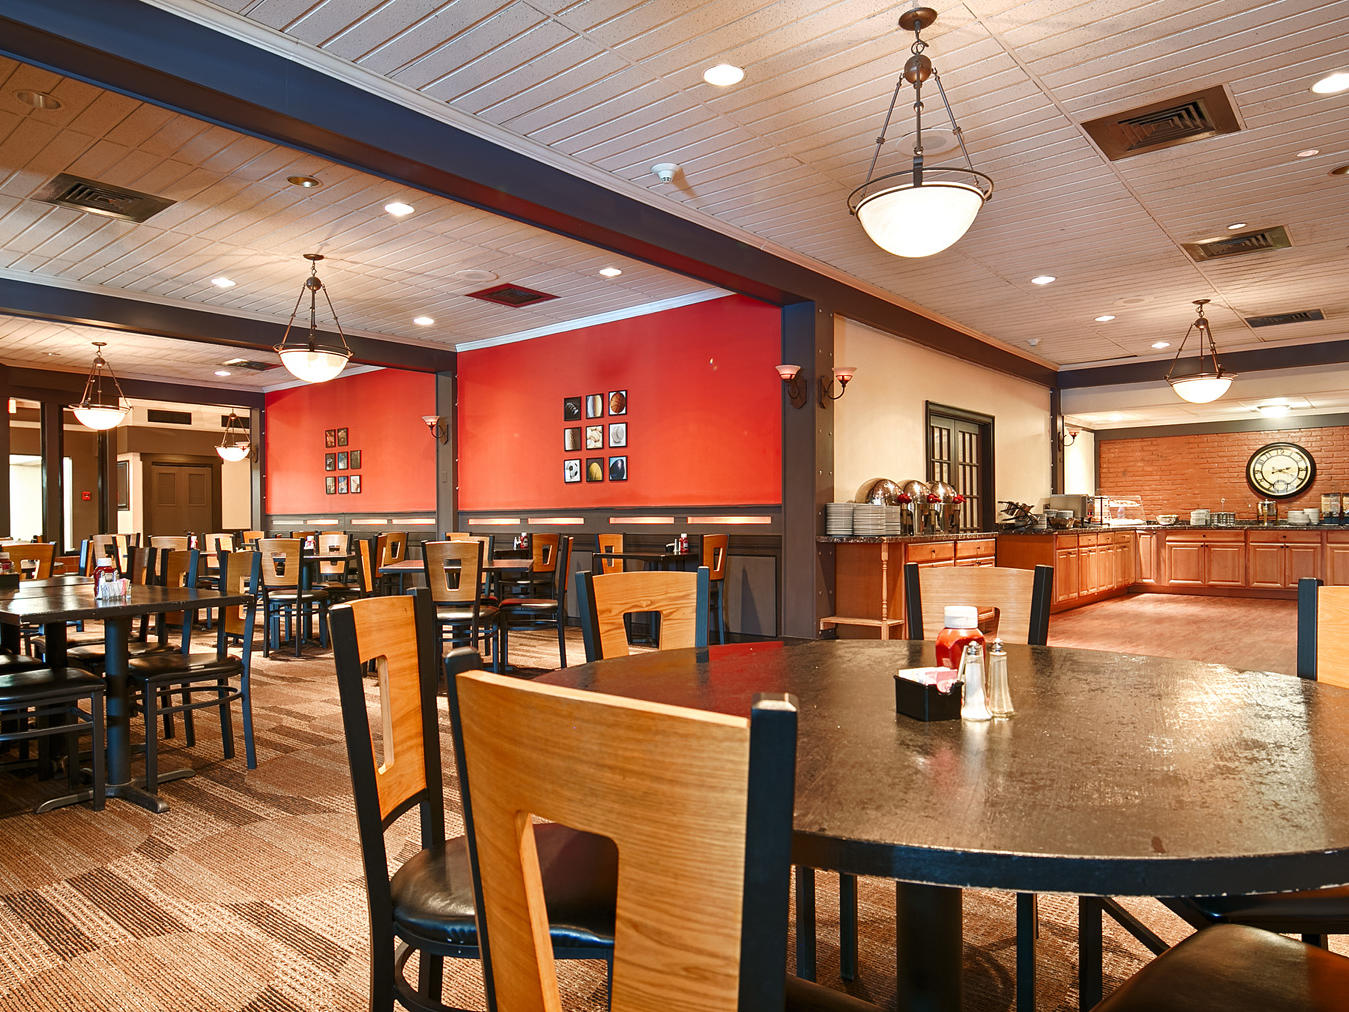 Open daily for lunch, dinner, and your favorite beverage.